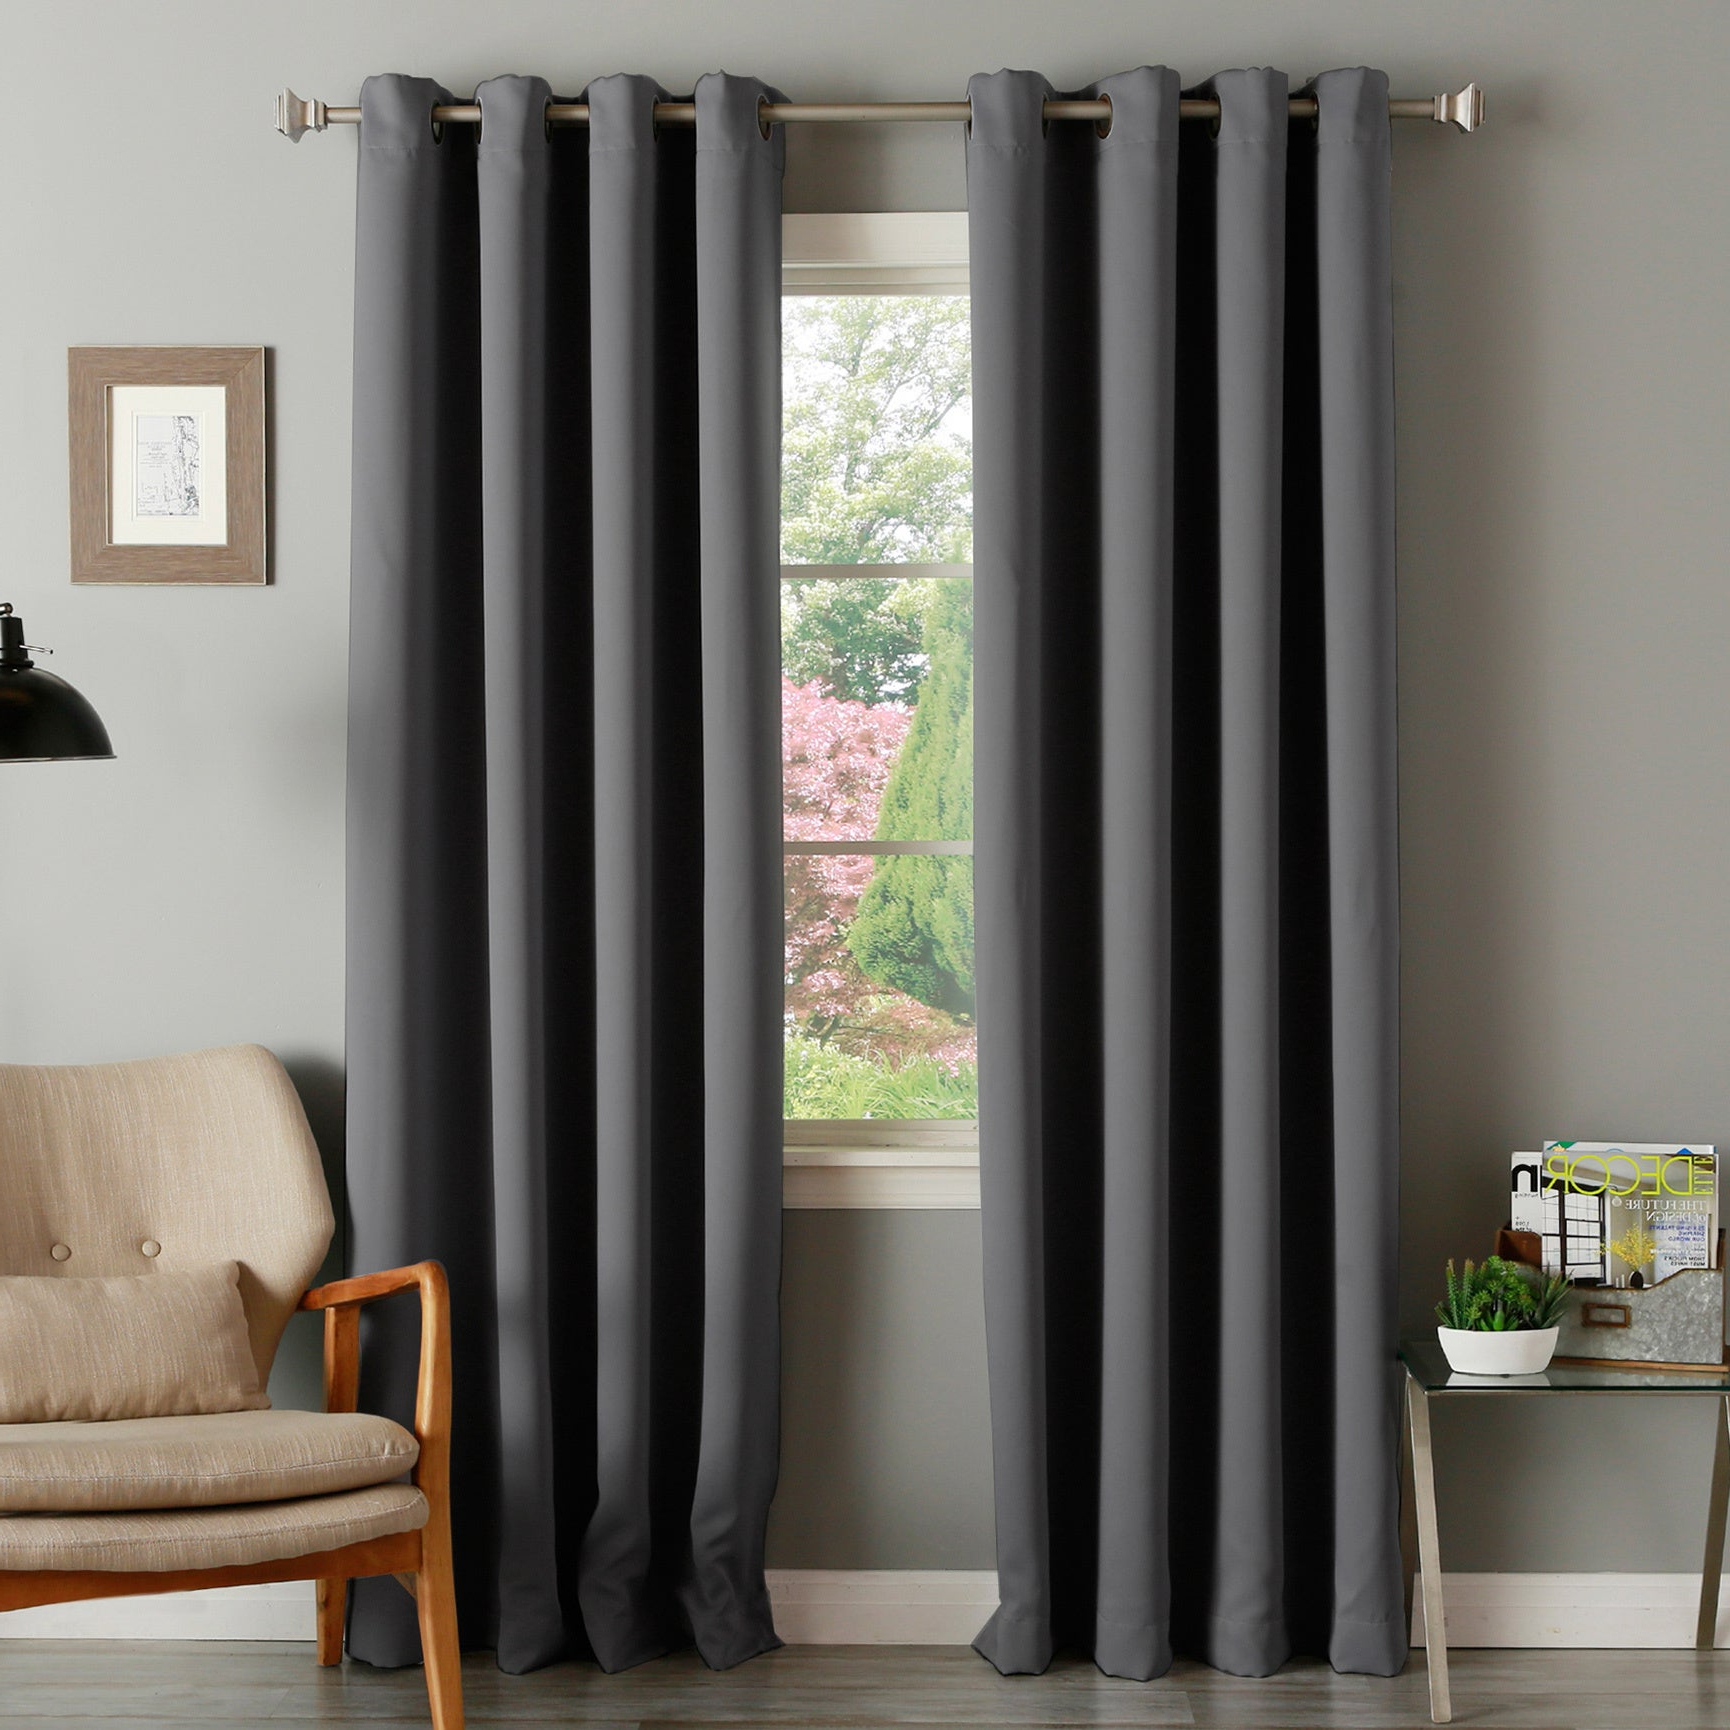 Solid Thermal Insulated Blackout Curtain Panel Pairs Inside Fashionable Aurora Home Thermal Insulated Blackout Grommet Top 84 Inch Curtain Panel Pair – 52 X (View 4 of 20)